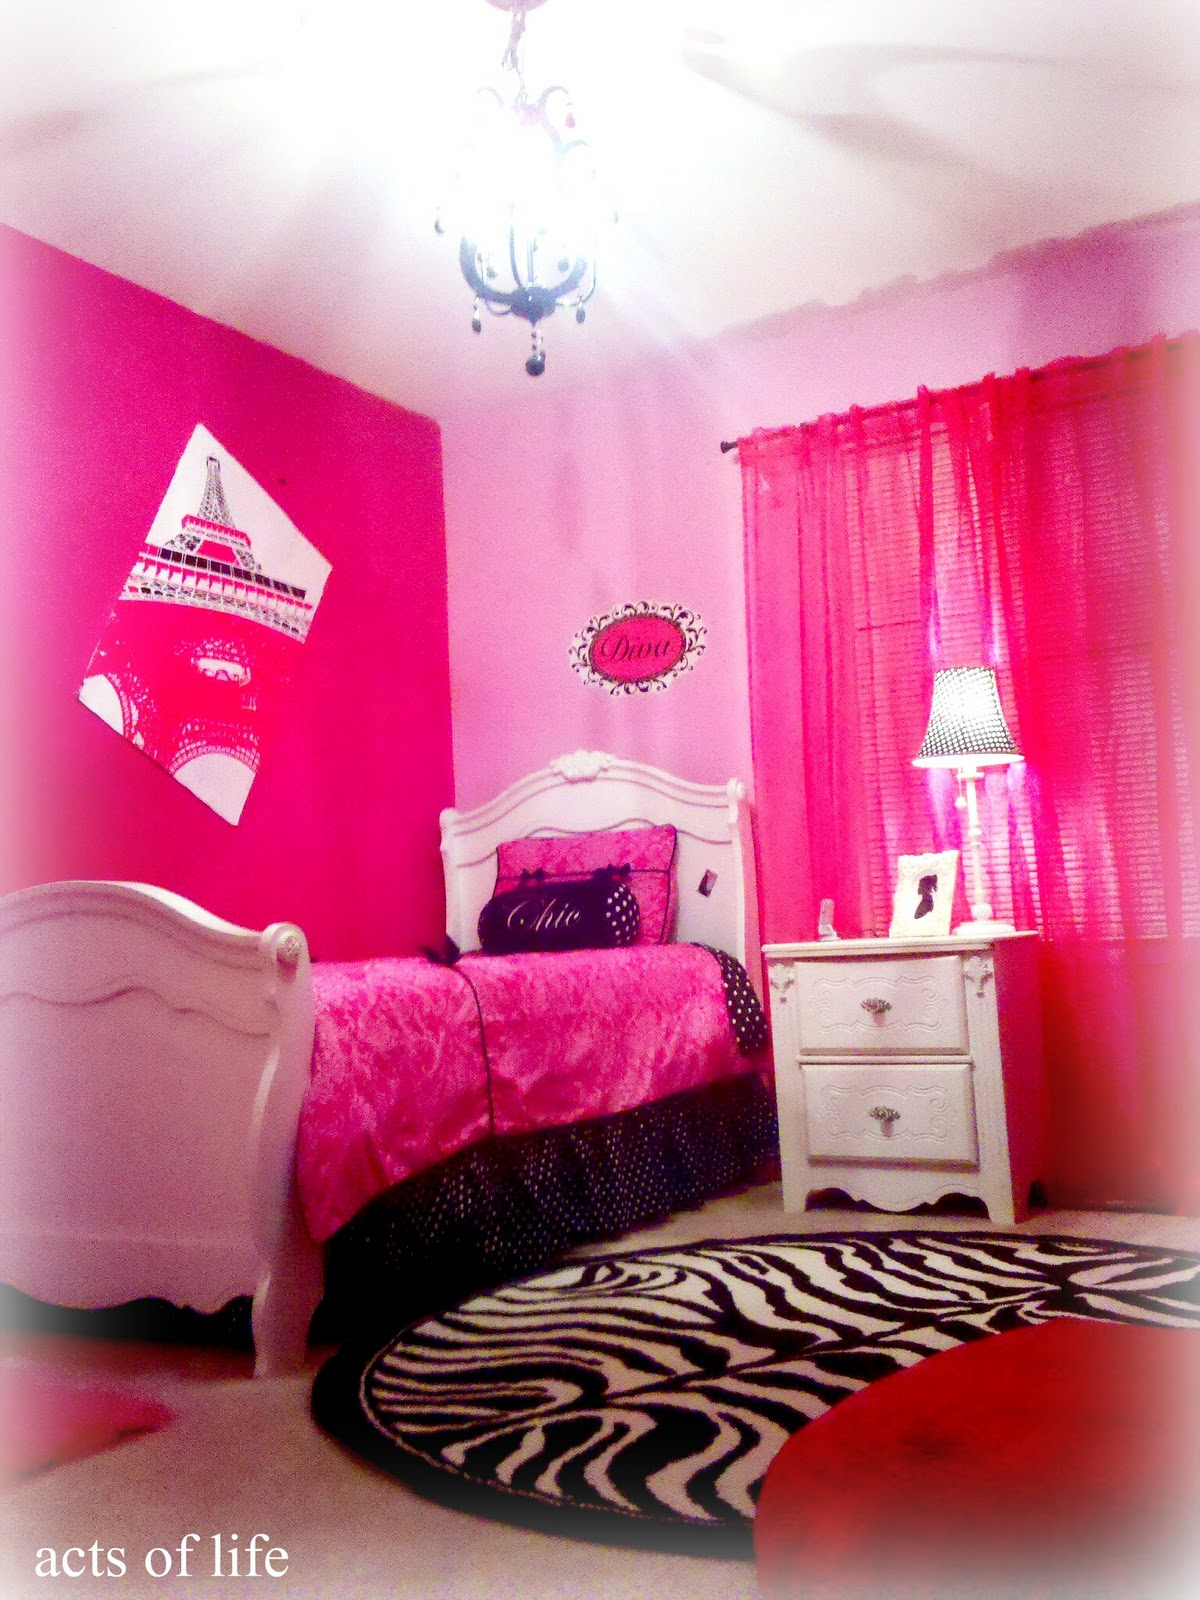 acts of life hot pink bedroom my daughters bedroom project